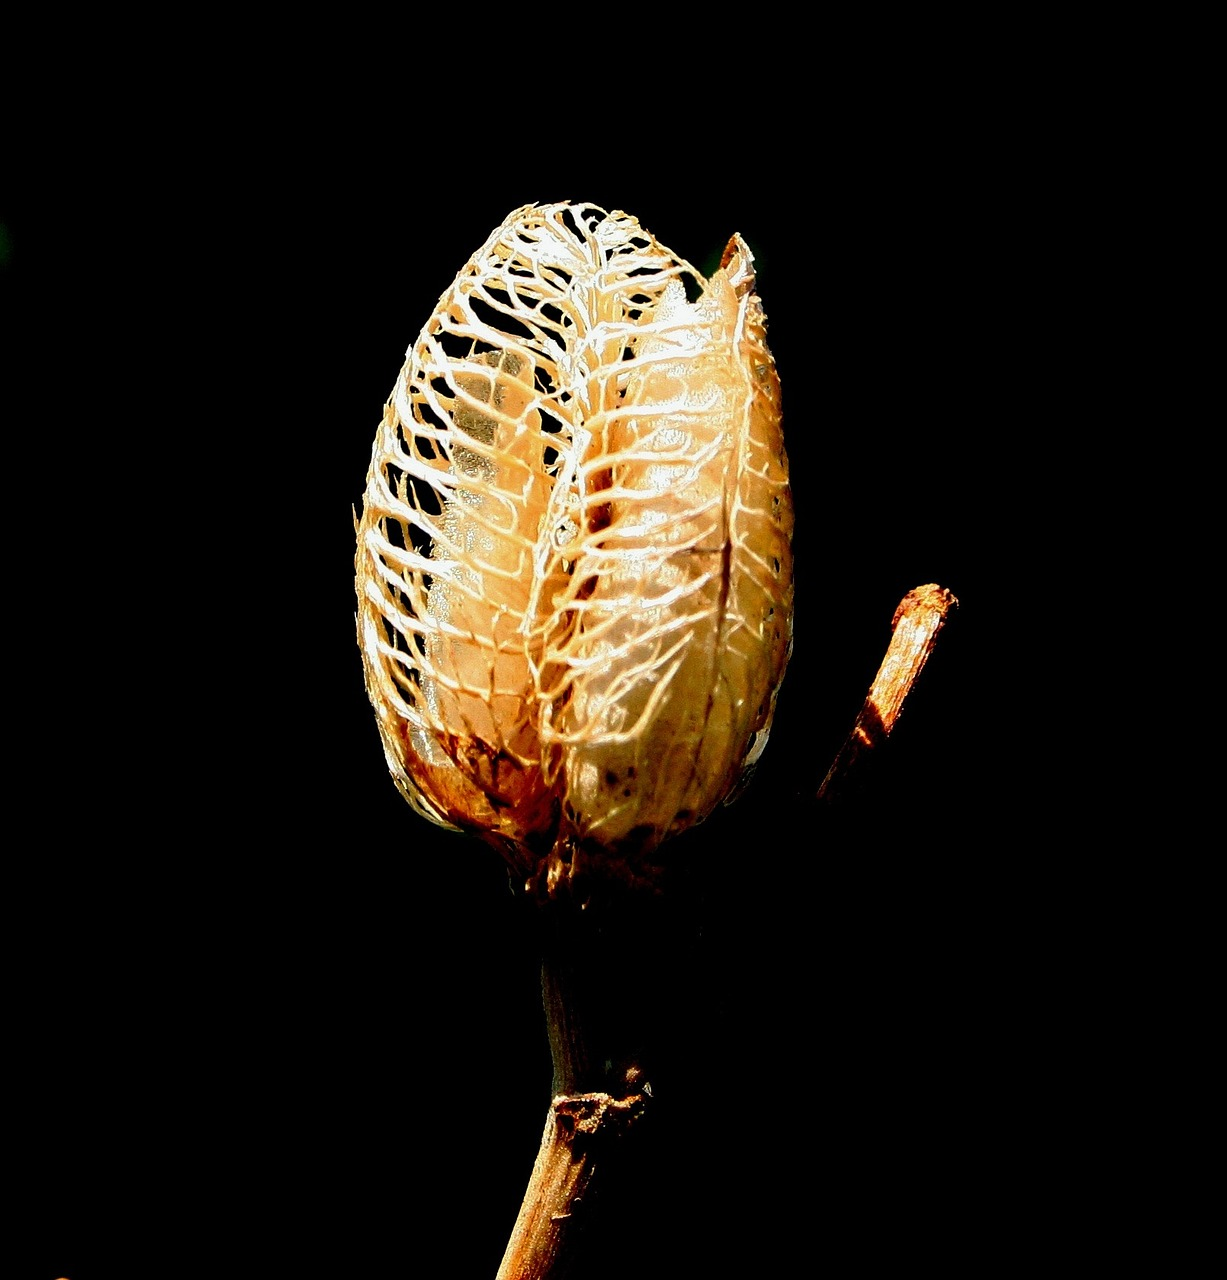 daylily seedpod,loculicidal capsule,dried fruit,dried flower,seedpod,seed,pod,stick,free pictures, free photos, free images, royalty free, free illustrations, public domain